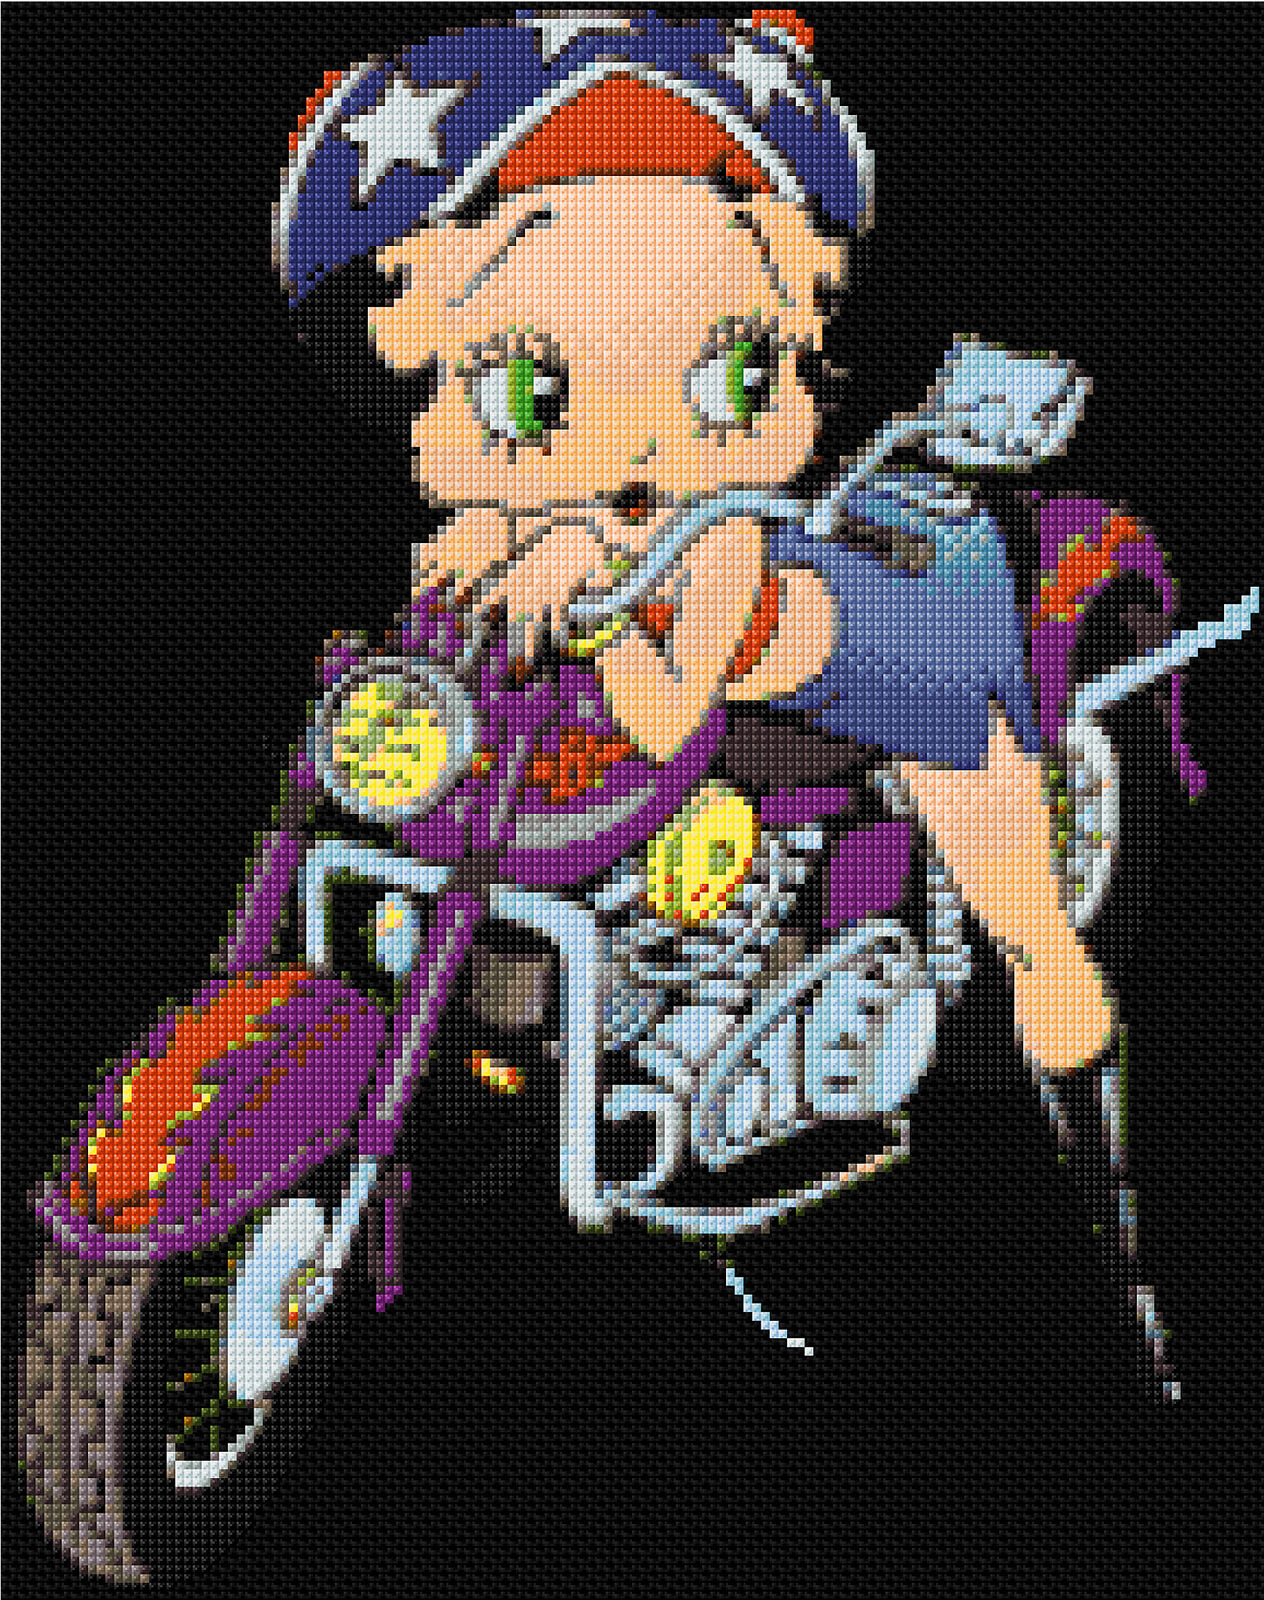 Cinderella Design 2 Counted Cross Stitch Kit Cartoon Characters TV//Film Disney